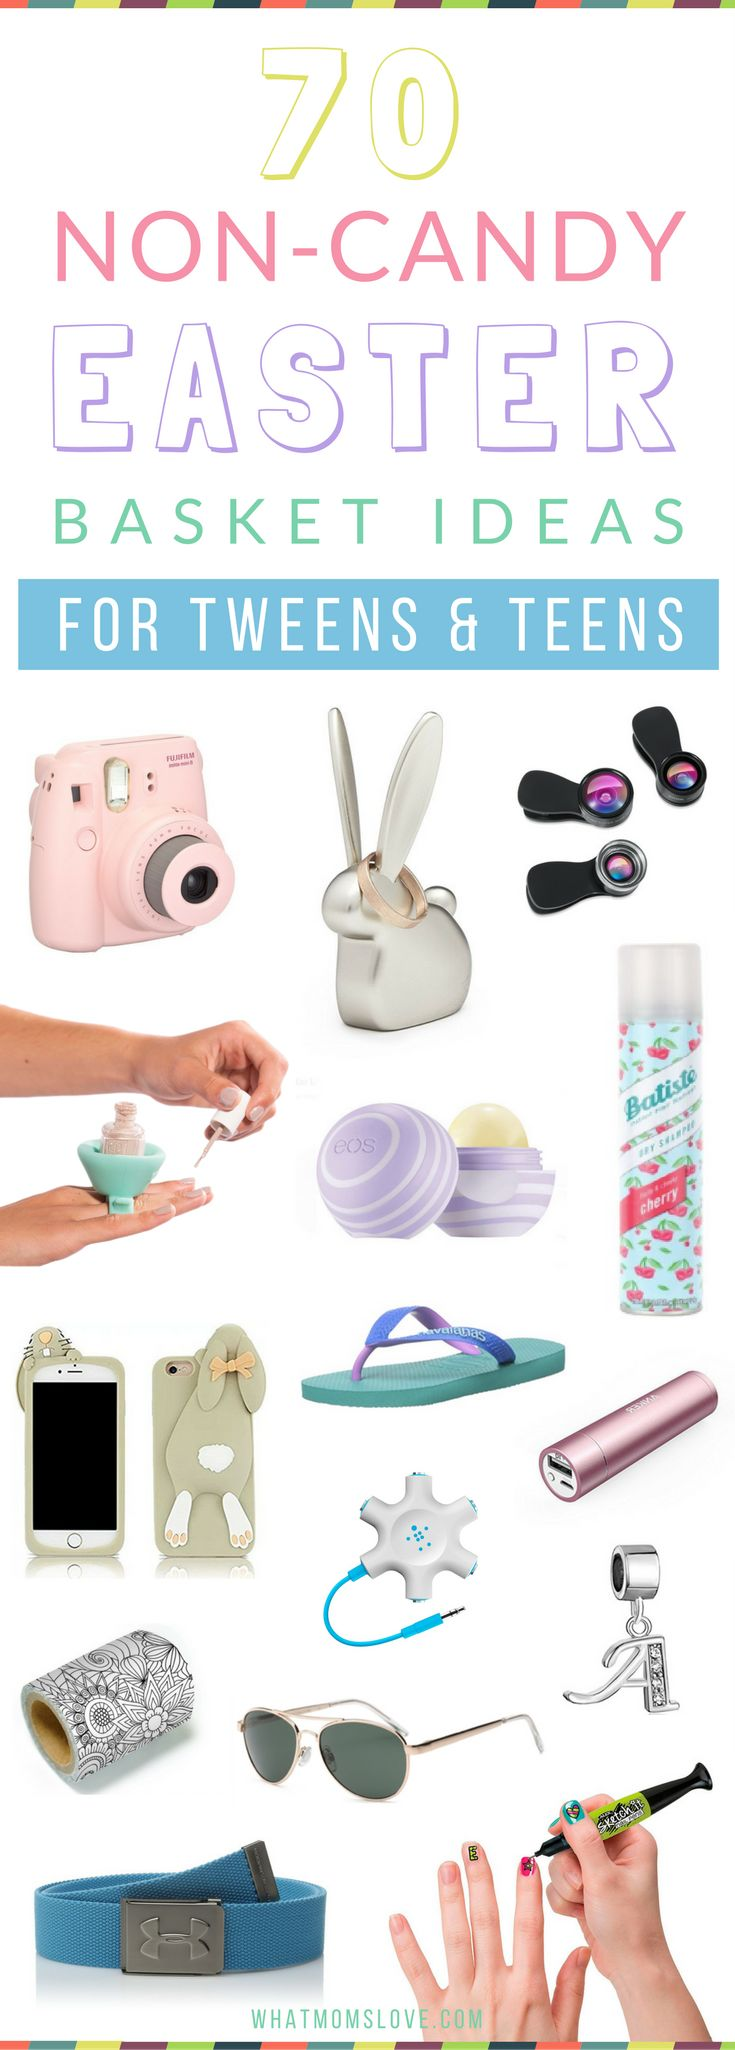 Non Candy Easter Basket Ideas for Tweens and Teens | Includes unique and creative tech gifts, useful items, games, beauty, fashion and more! Great for those hard to buy for teenage girls and boys! Check out the full list at whatmomslove.com